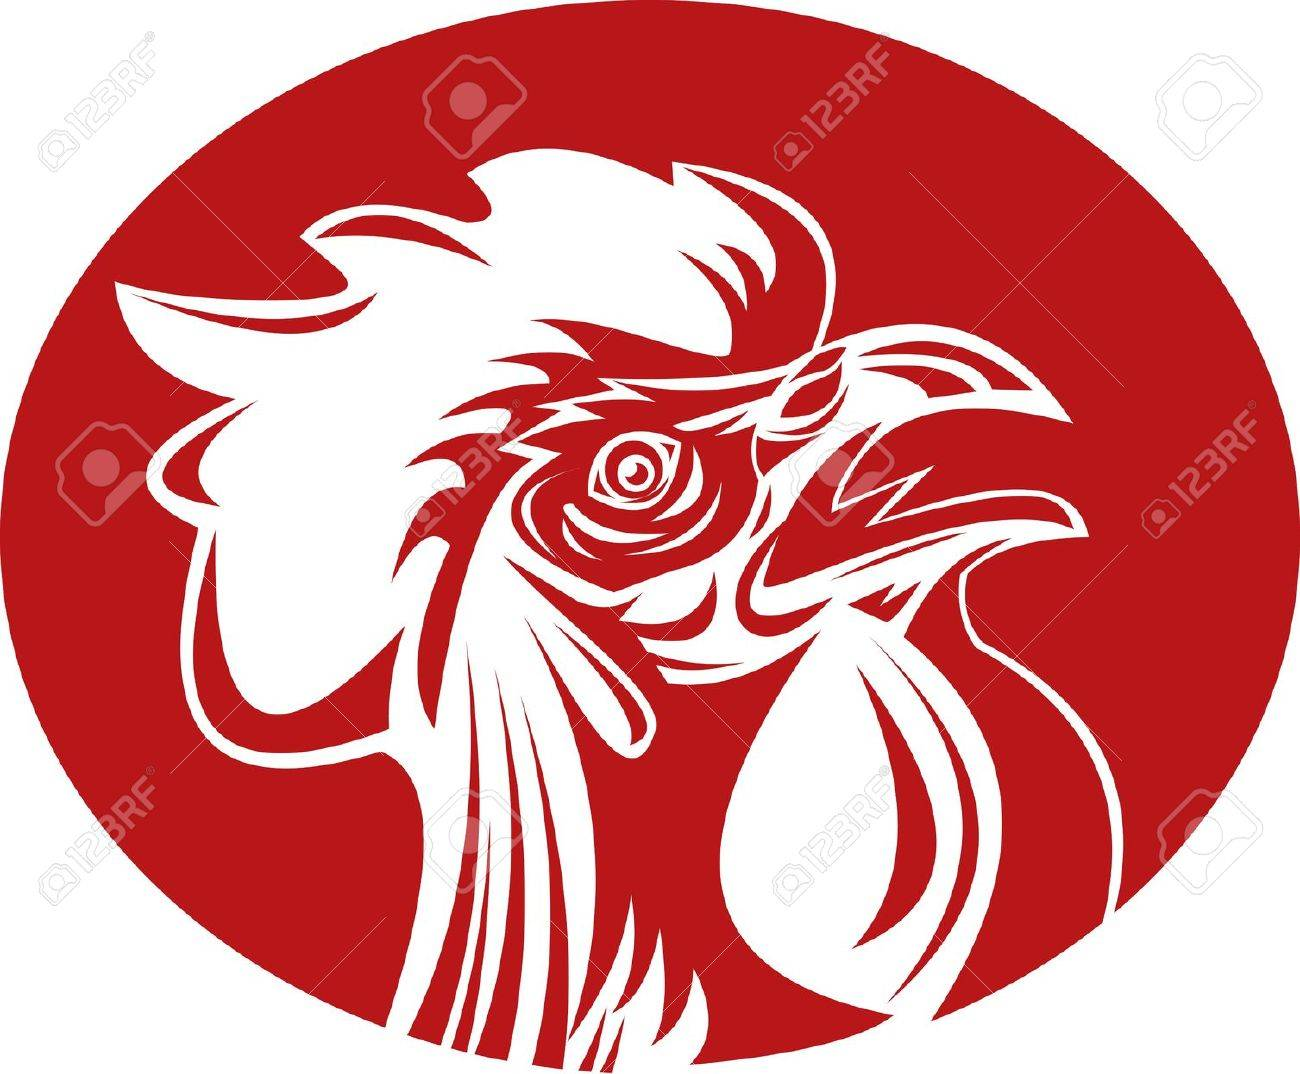 illustration of a Rooster cockerel crowing Stock Illustration - 7490166